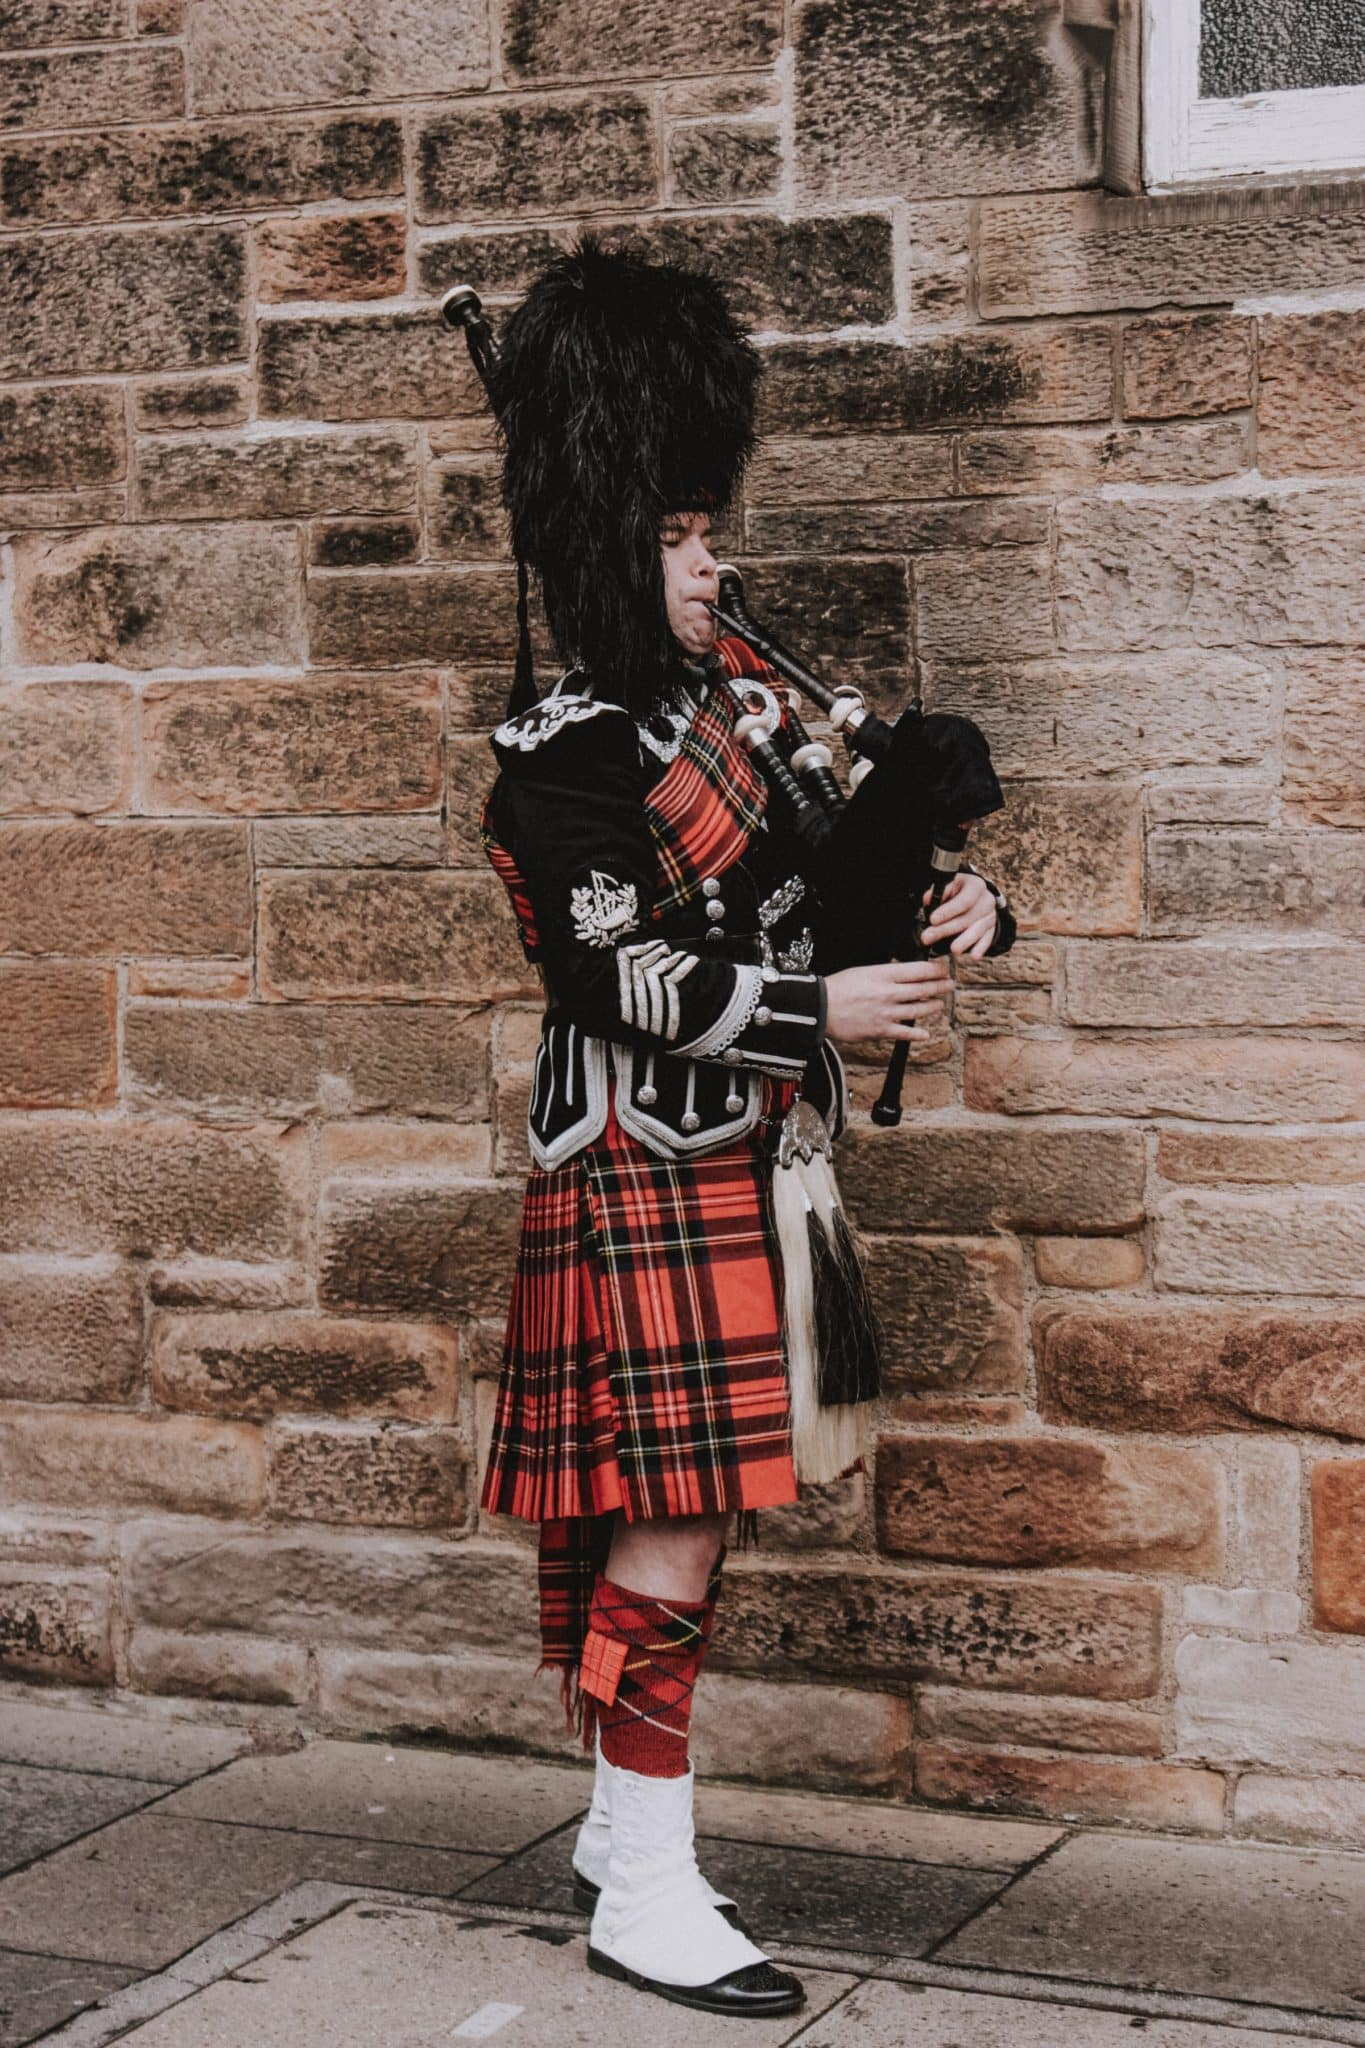 Male bagpiper dressed in Scottish garb with kilt